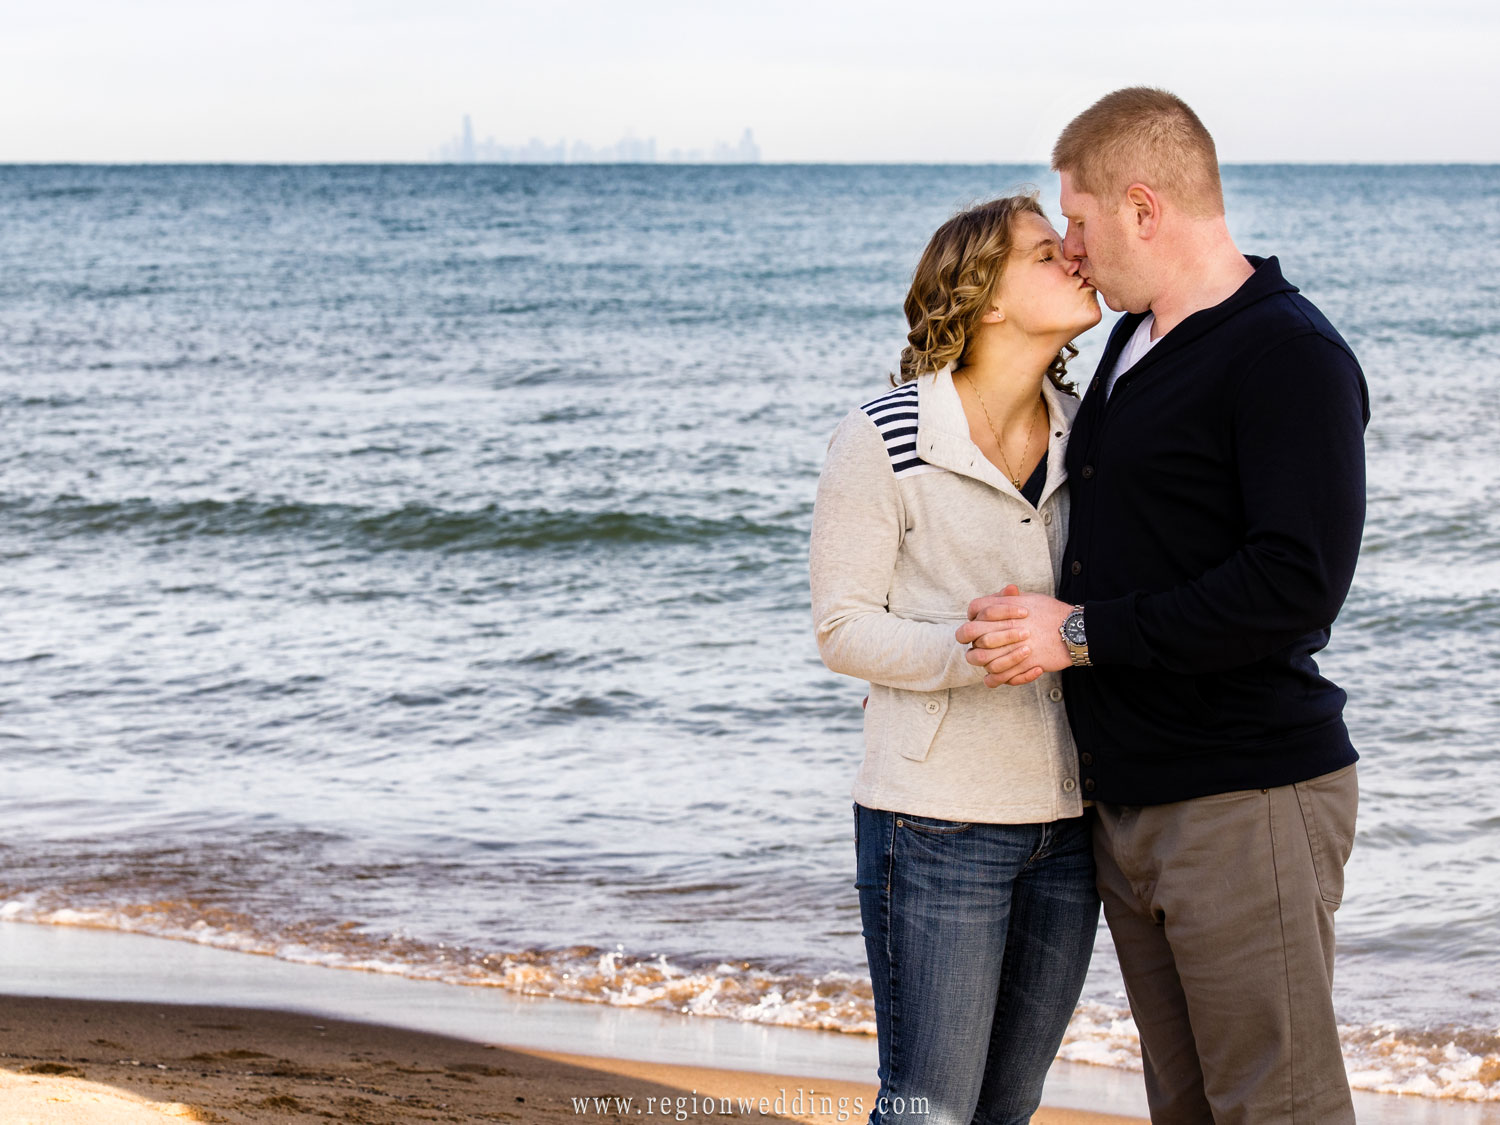 The skyline of Chicago can be seen in the background of this engagement photo along Lake Michigan.